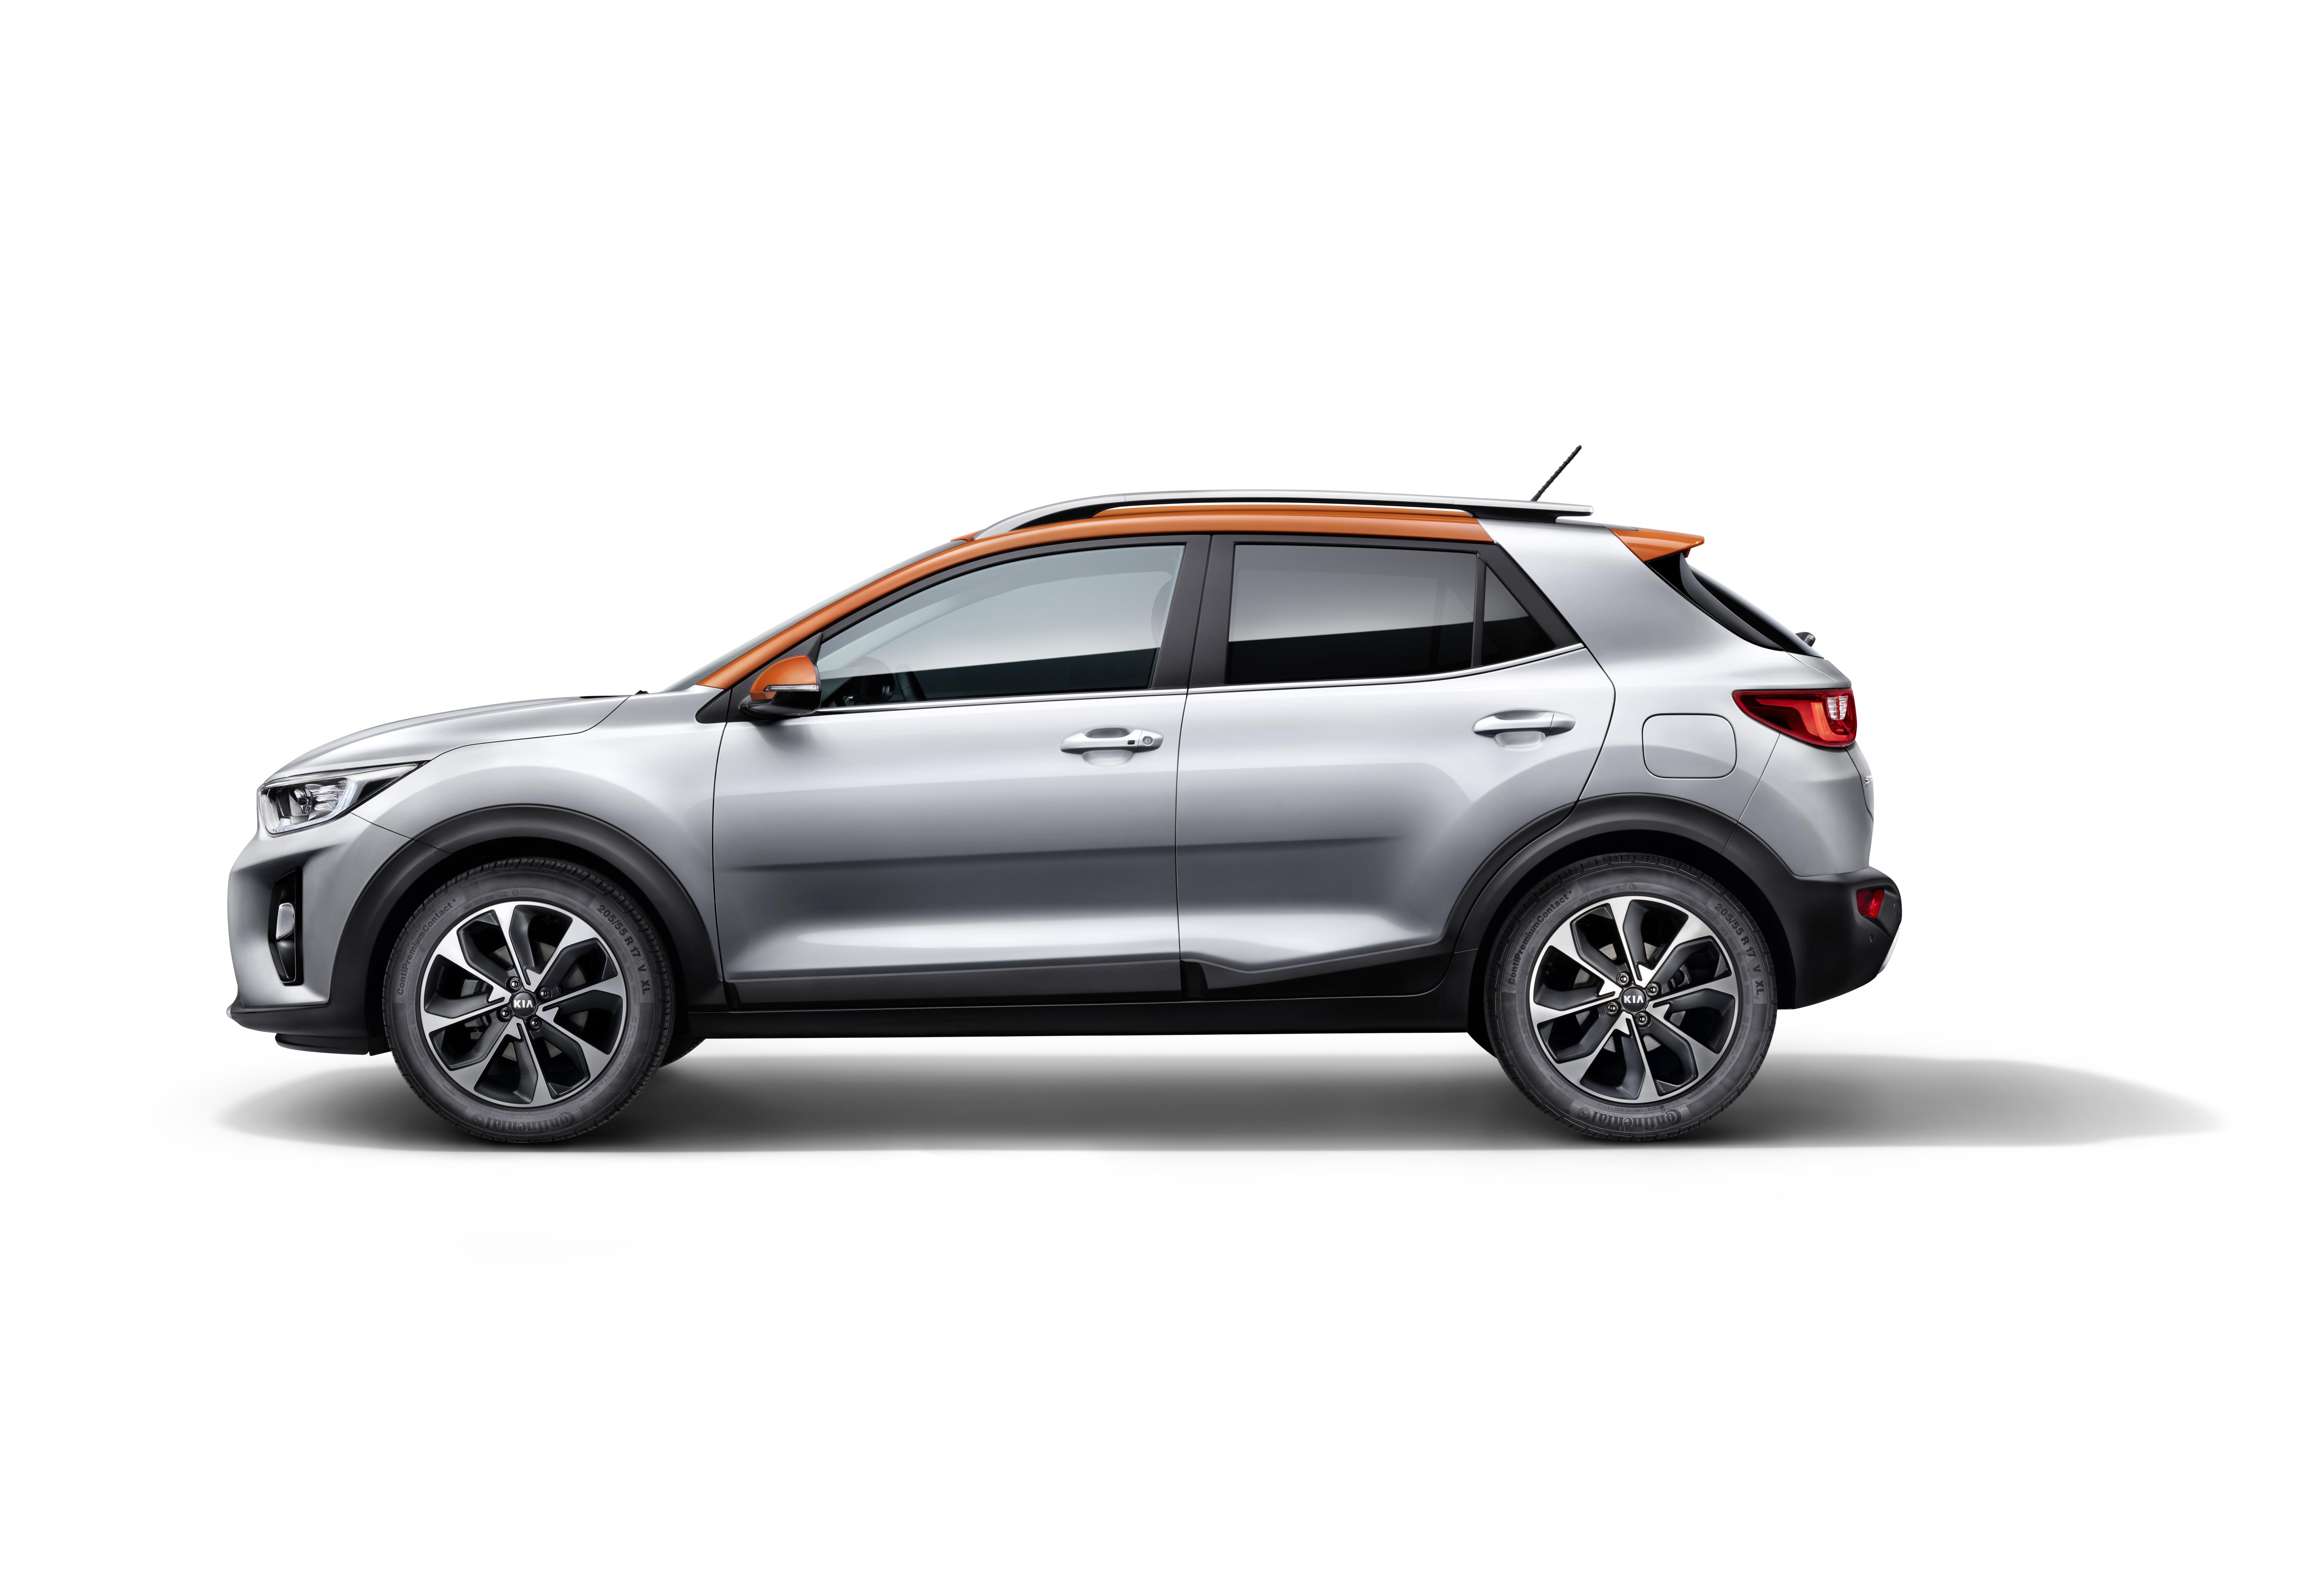 2018 kia stonic goes official 1 6 crdi confirmed for. Black Bedroom Furniture Sets. Home Design Ideas